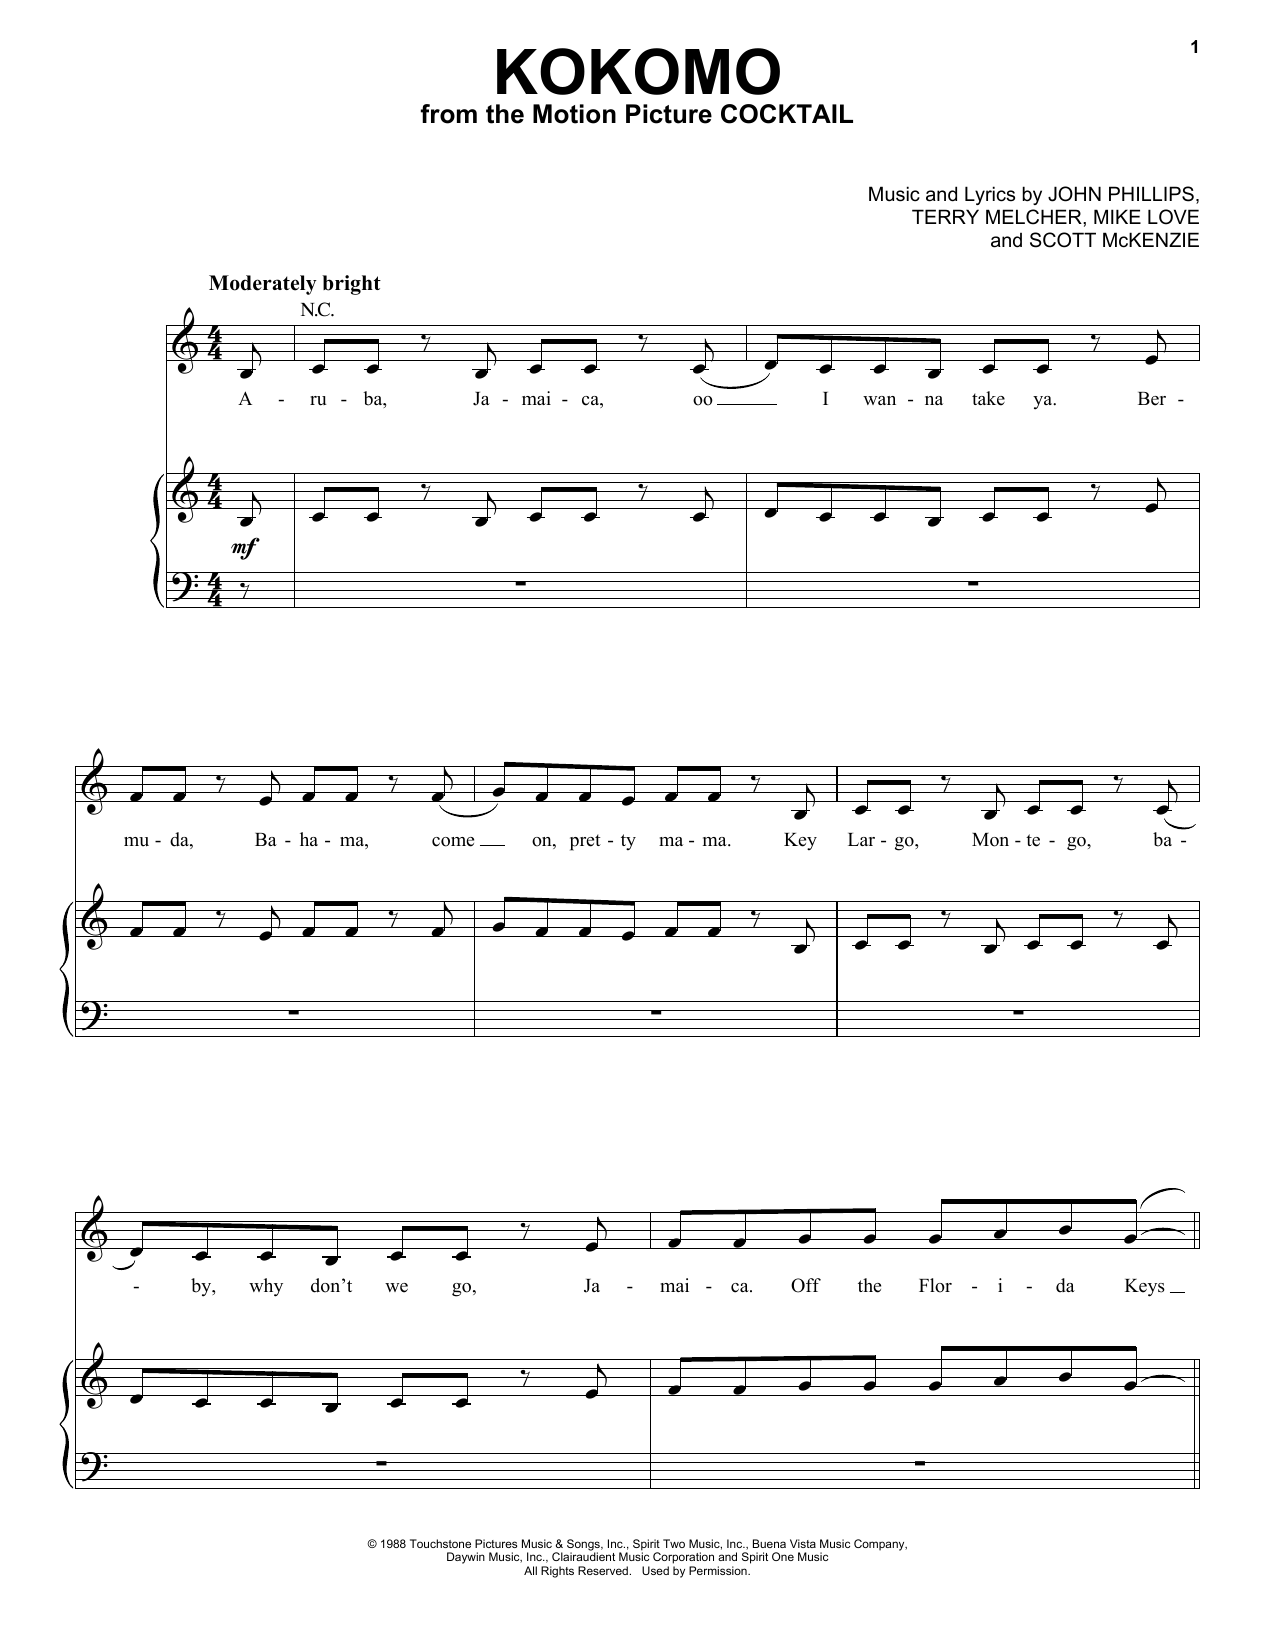 Memorable Movie Hits (complete set of parts) sheet music for voice, piano or guitar by Bryan Adams, Rod Stewart & Sting, Bryan Adams, Celine Dion, Frank Sinatra, James Horner, Jule Styne, Kermit The Frog, Michael Kamen, Paul Williams, Robert John Lange, Rod Stewart, Sammy Cahn, Scott McKenzie, Sting, The Beach Boys, The Four Aces, The Muppets, Will Jennings and Willie Nelson. Score Image Preview.